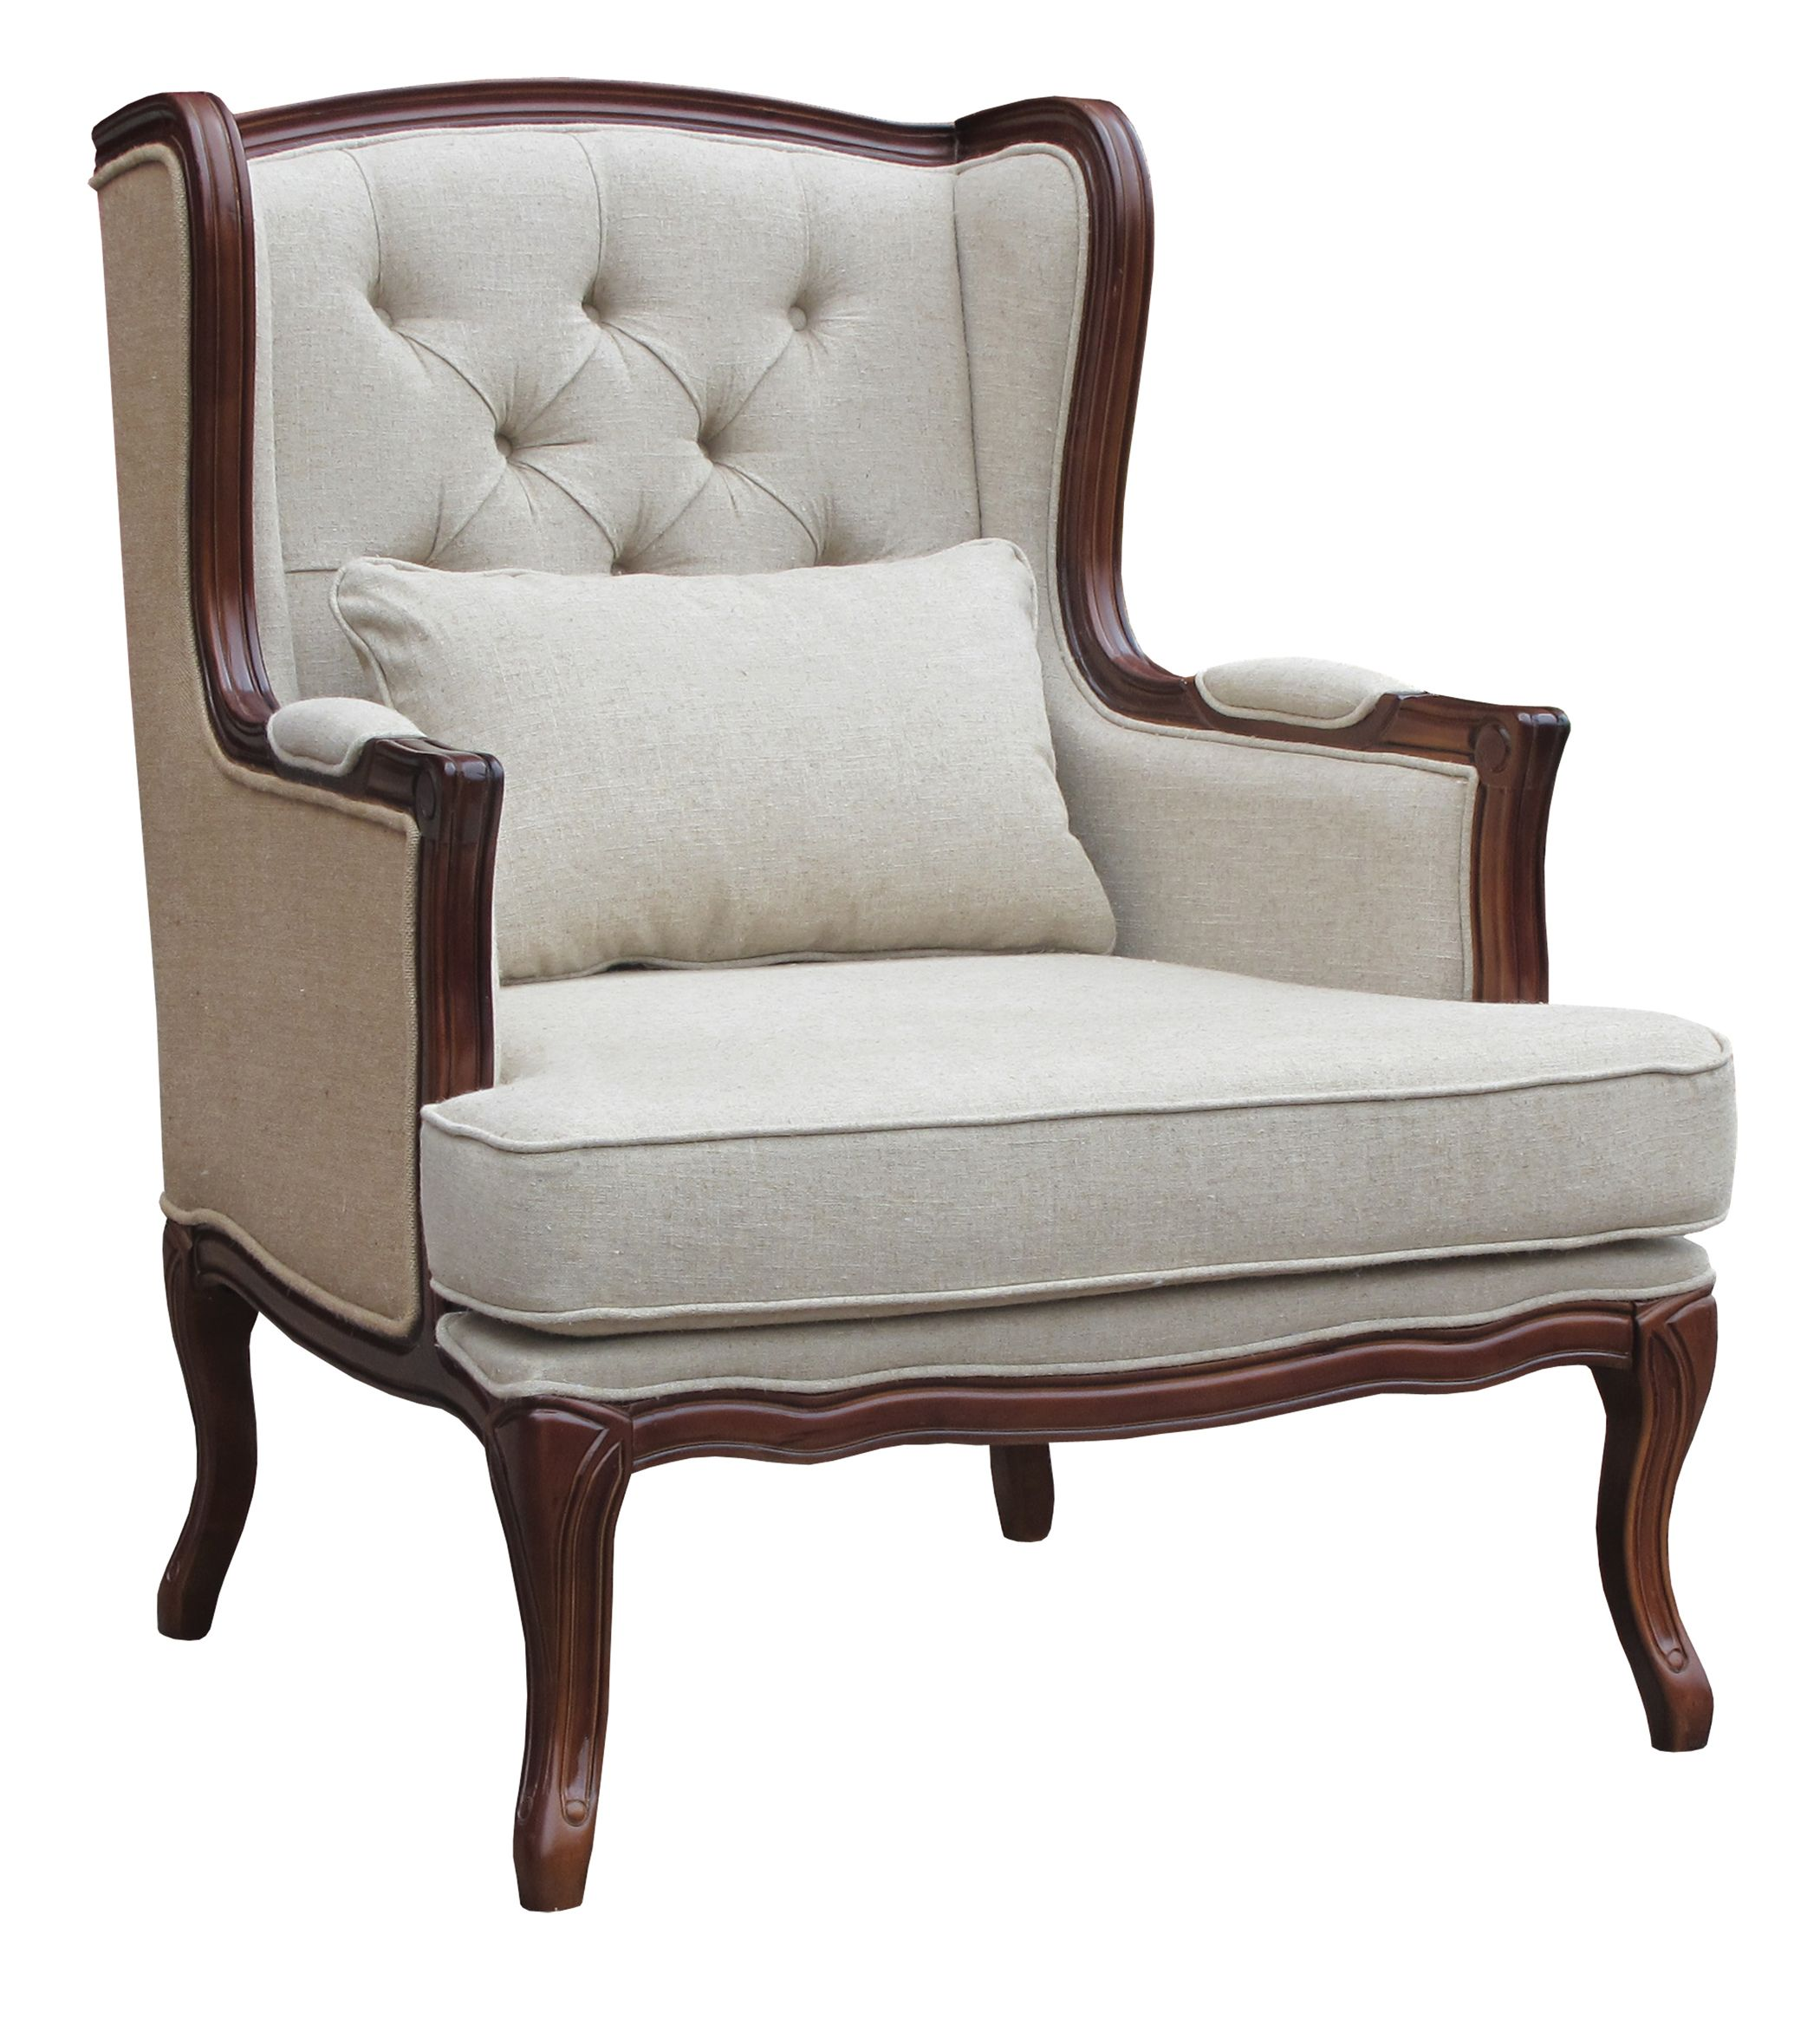 Cream And Brown Wing Back Chair With Tufted Back Lh